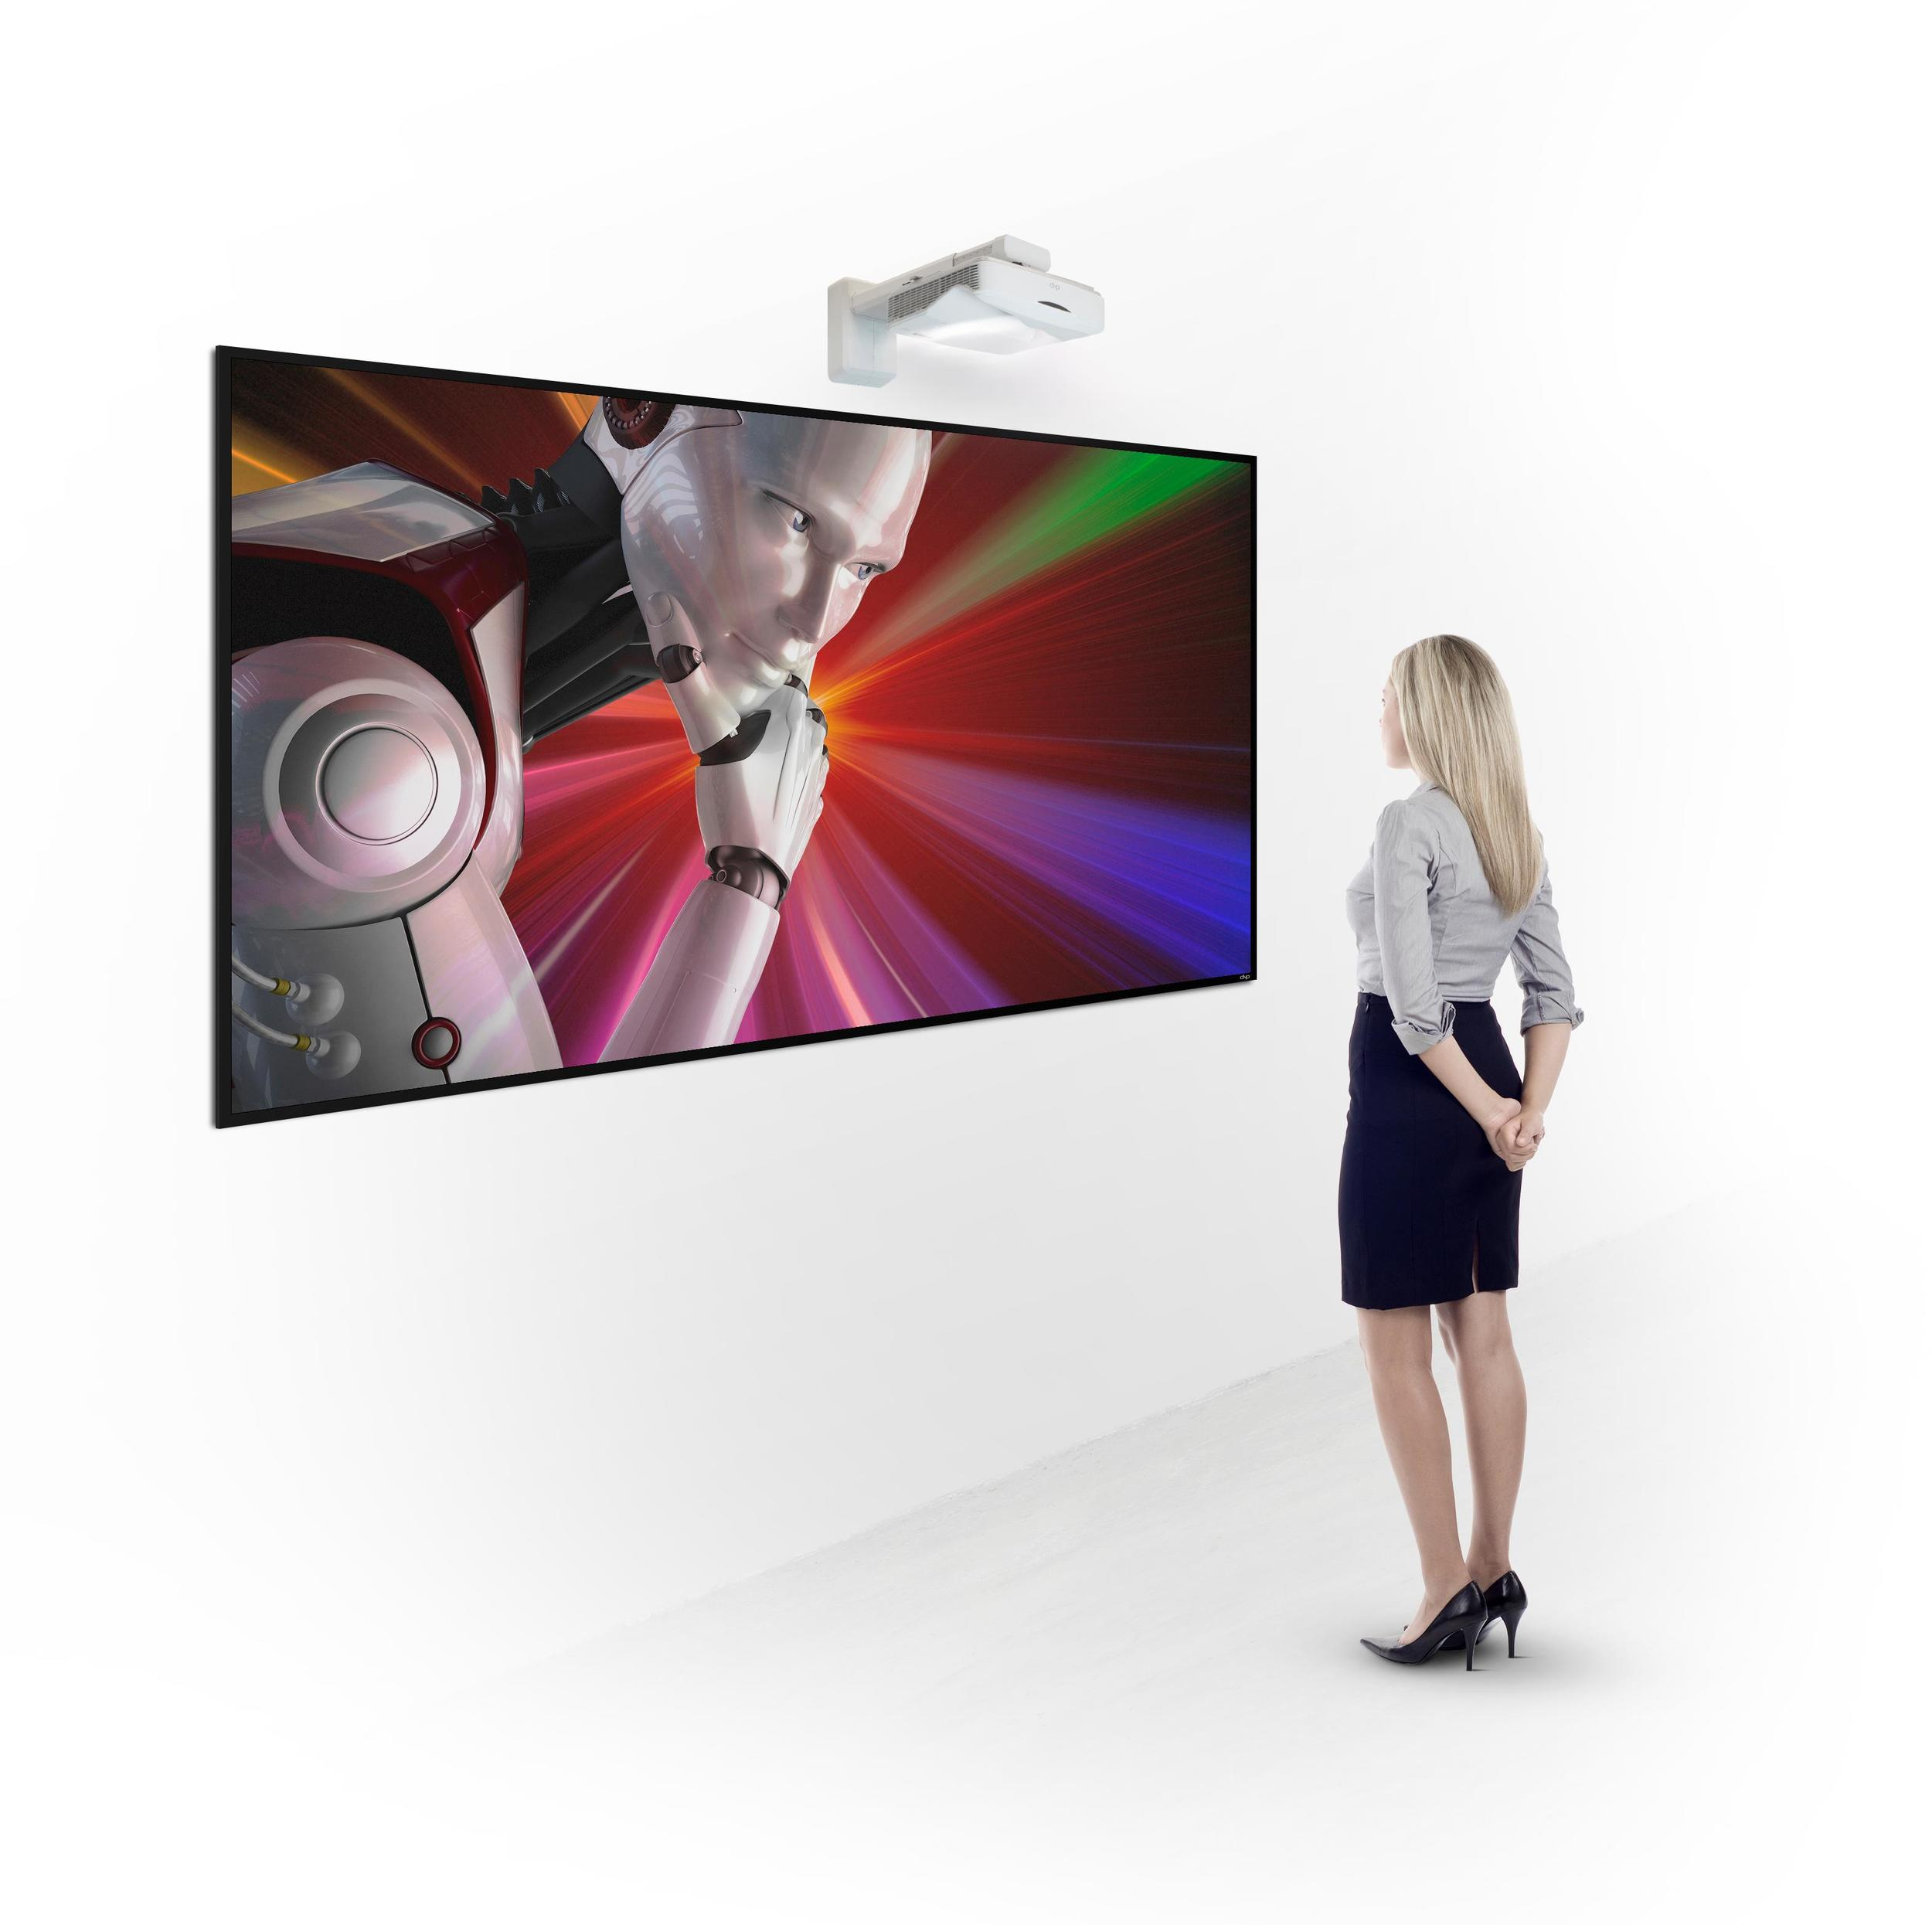 dnp LaserPanel Touch